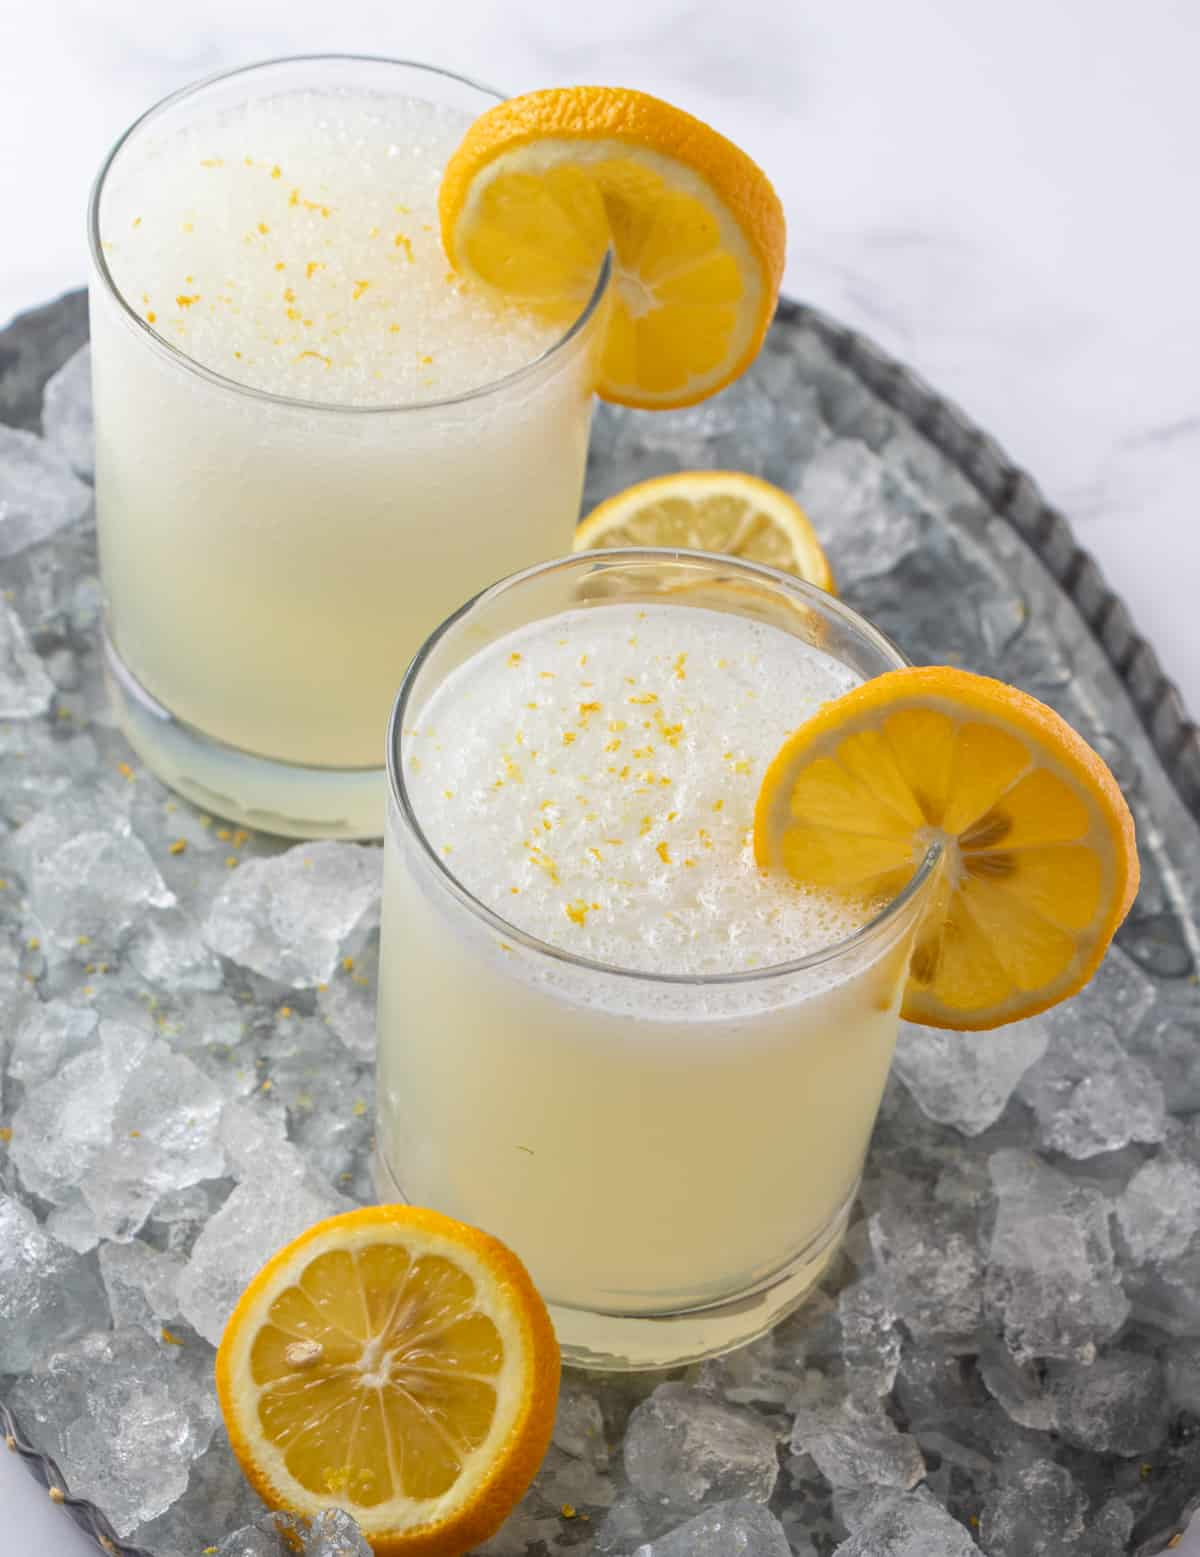 Frozen lemonade in two glasses surrounded by ice